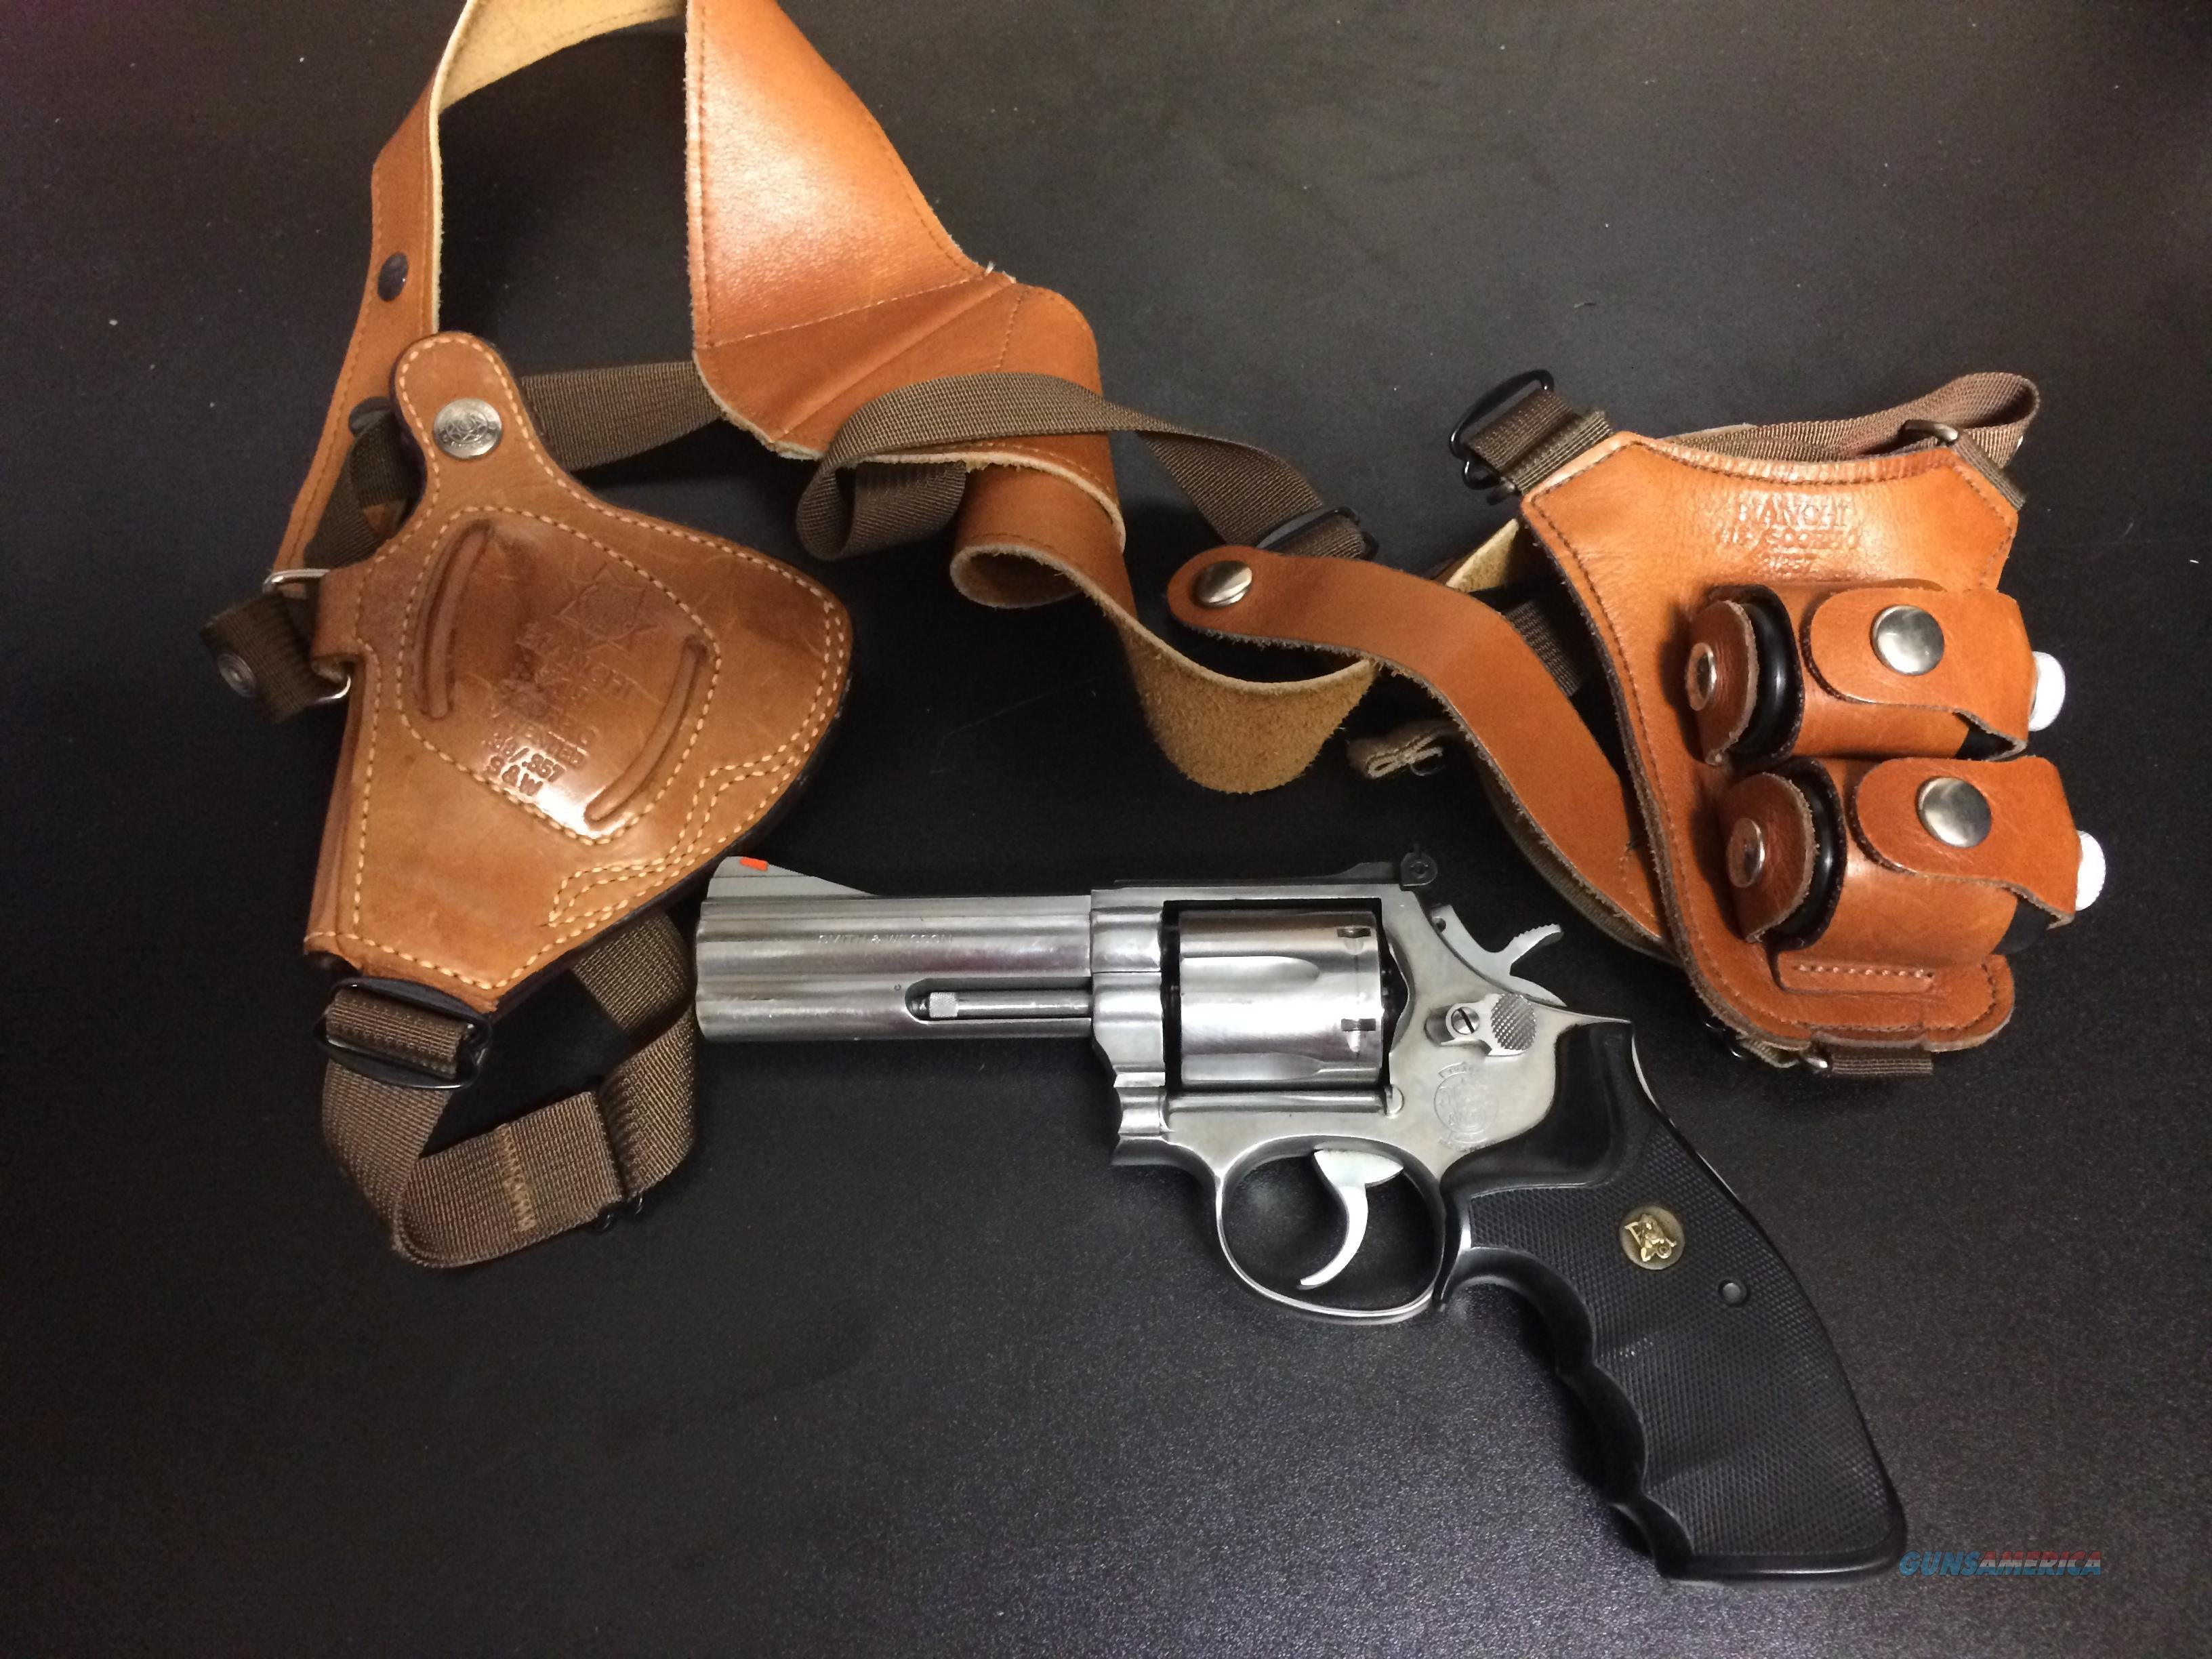 "S&W 686 4"" barrel .357 Mag with Bianchi shoulder holster and two speed loaders  Guns > Pistols > Smith & Wesson Revolvers > Full Frame Revolver"